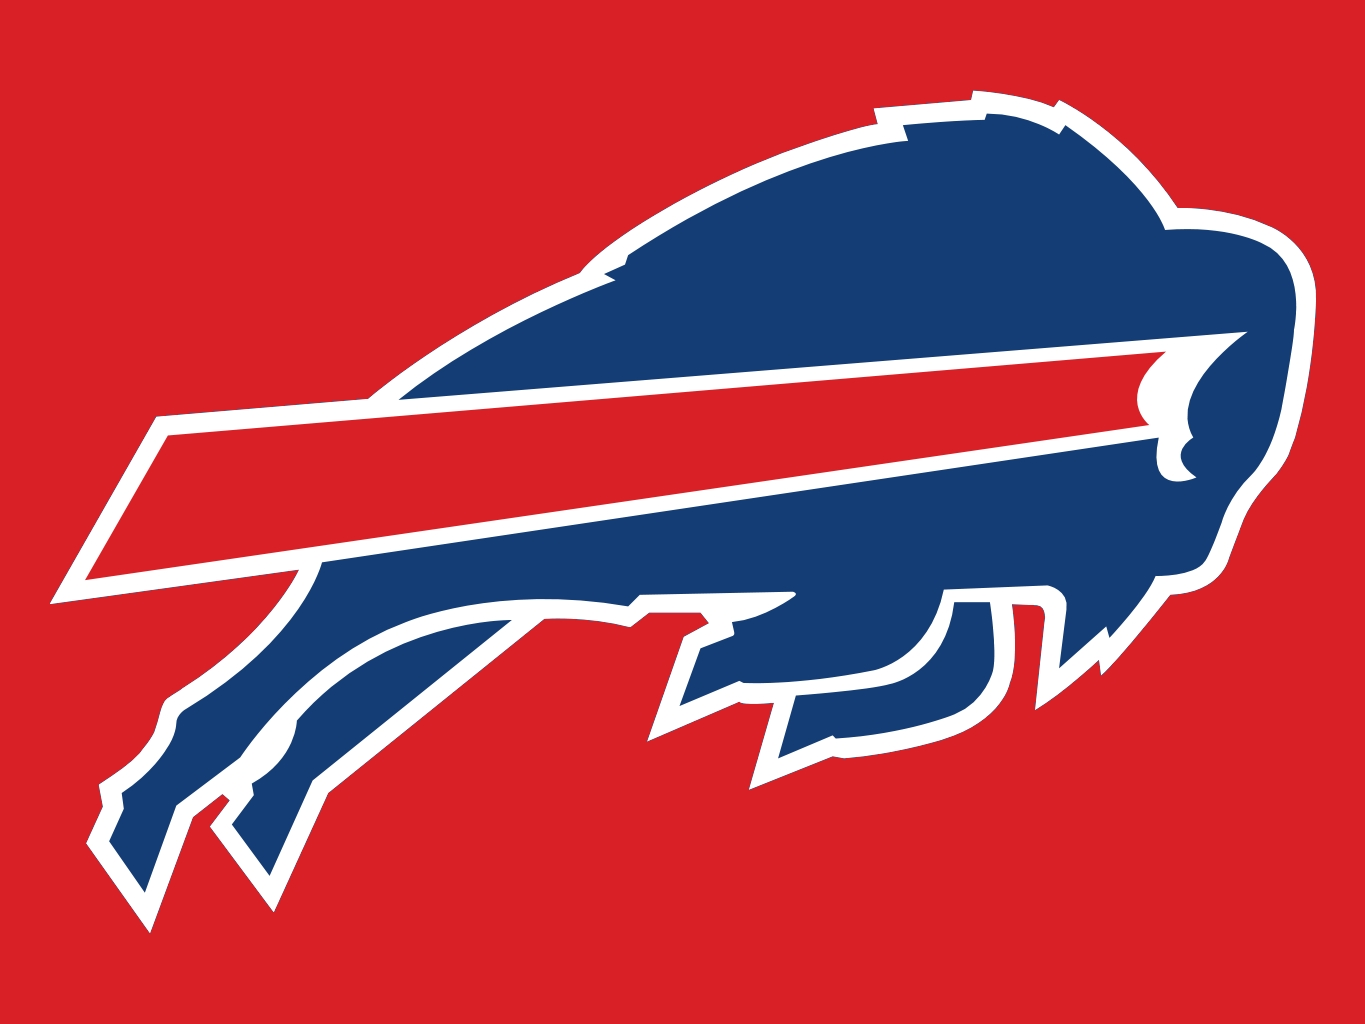 Buffalo Bills Red 1365x1024